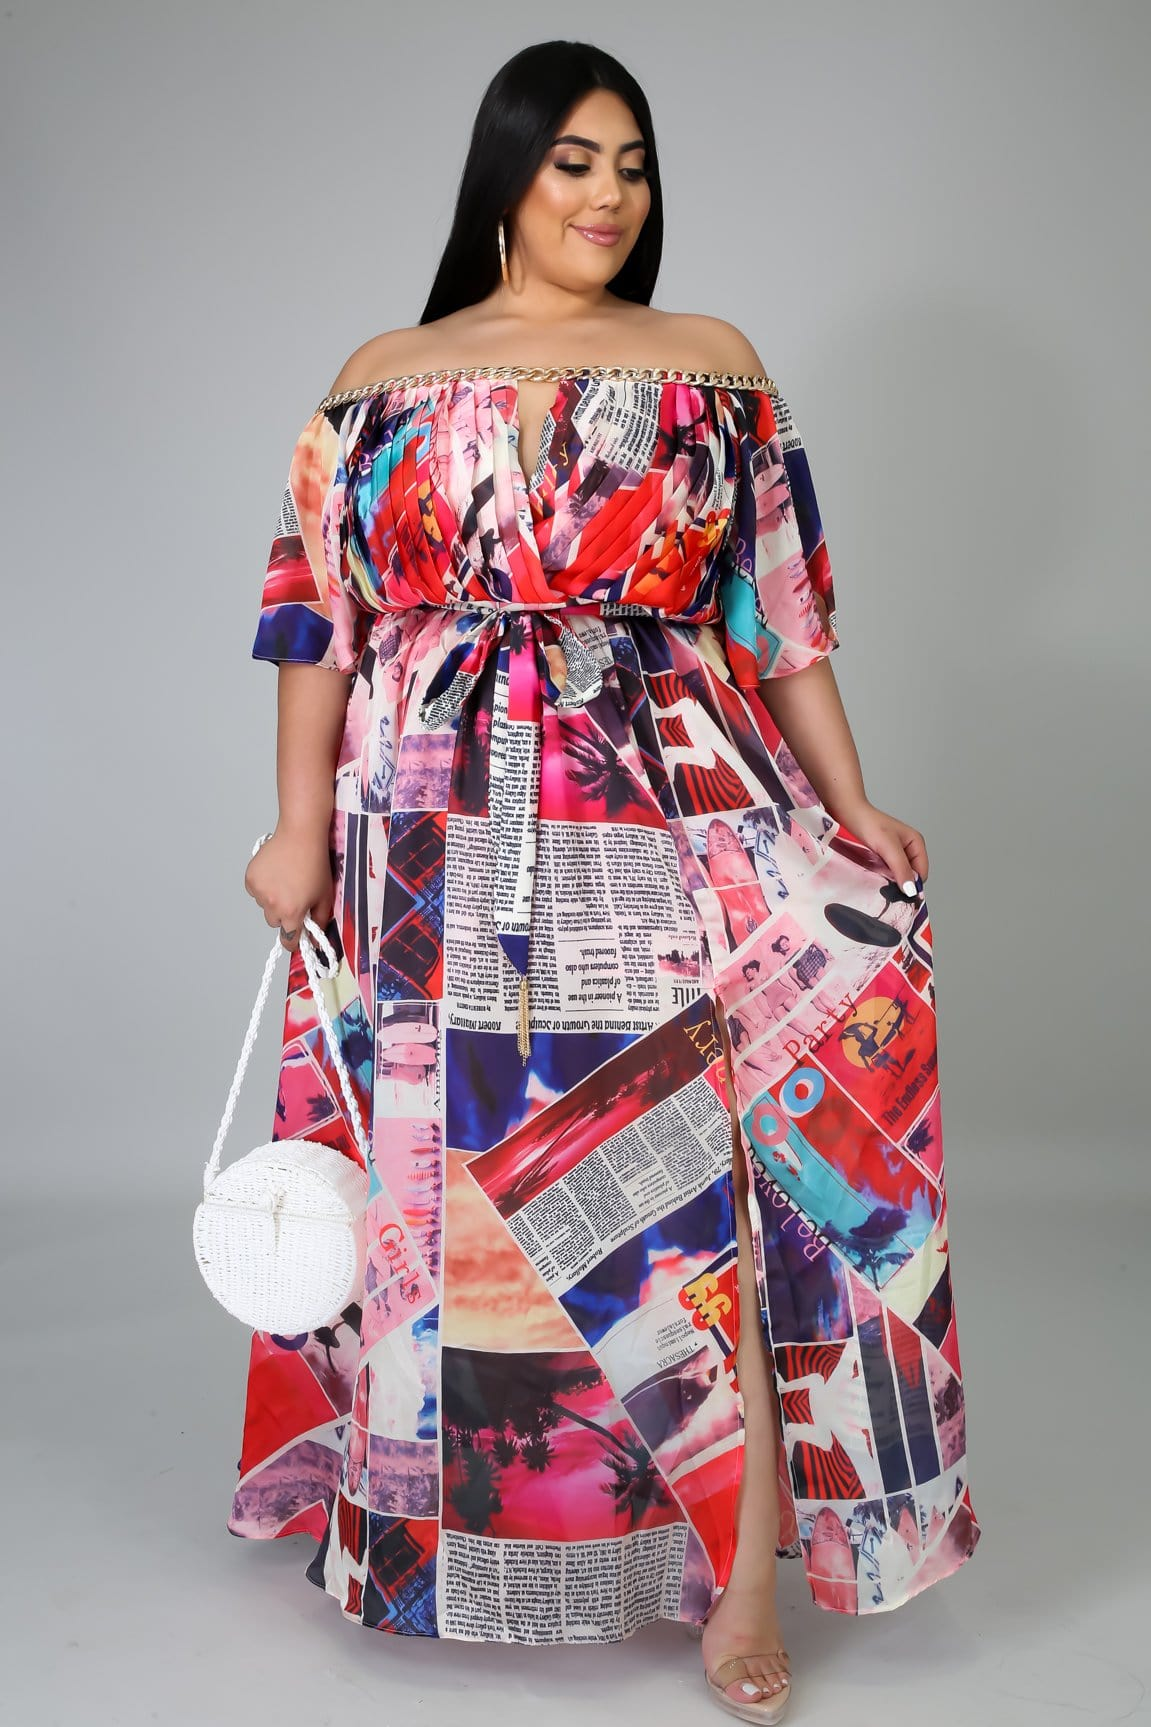 Bringing The News Multiprint Dress